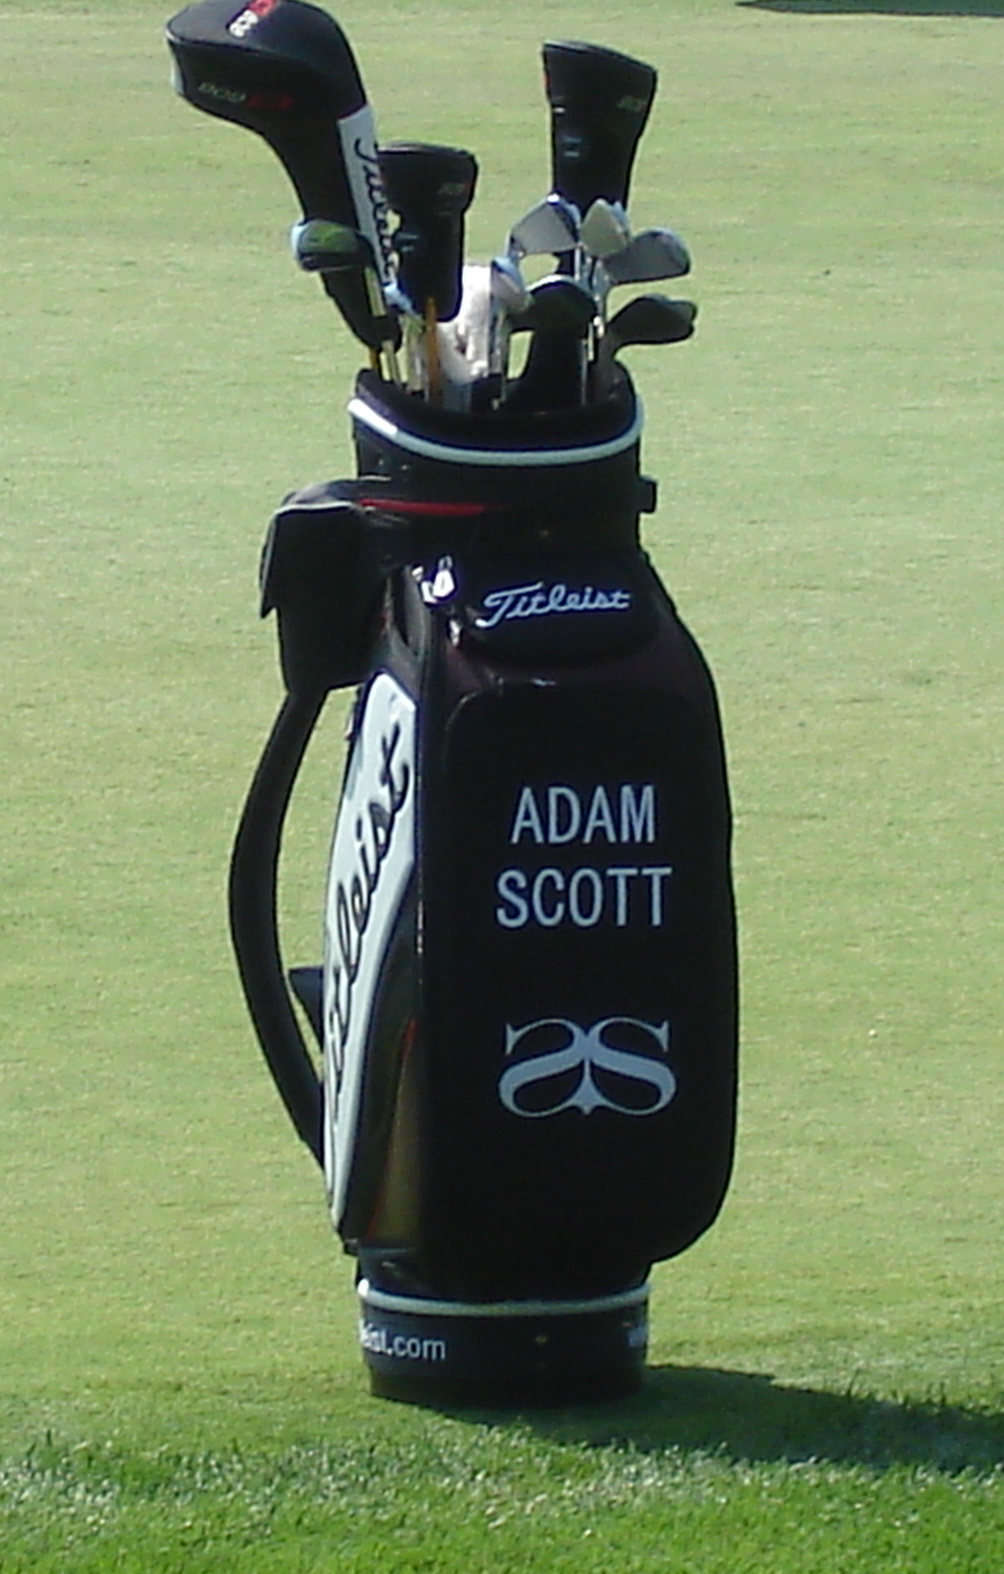 File As Golf Bag Jpg